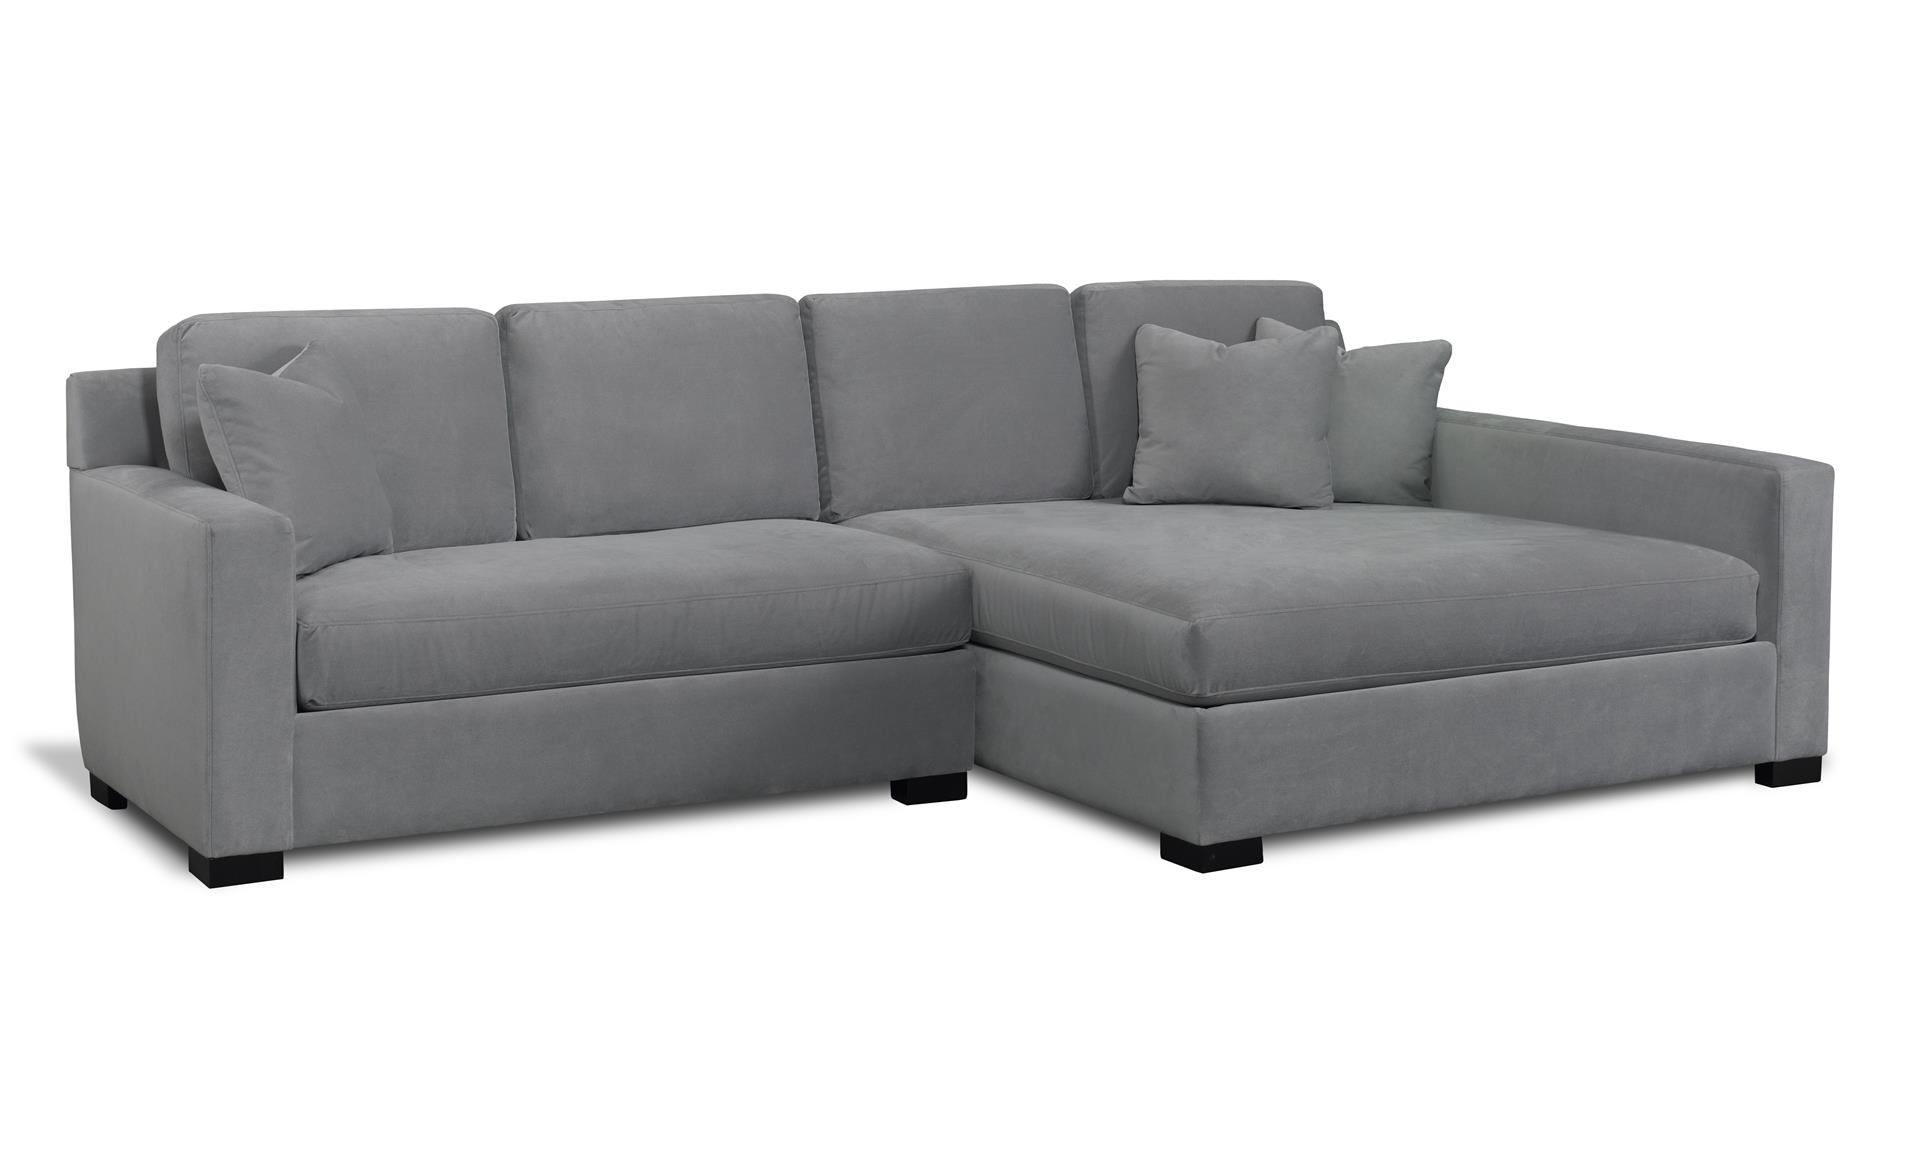 Precedent Cameron Sofa Sectional From Dutchcrafters Within Cameron Sofa Chairs (Image 22 of 25)